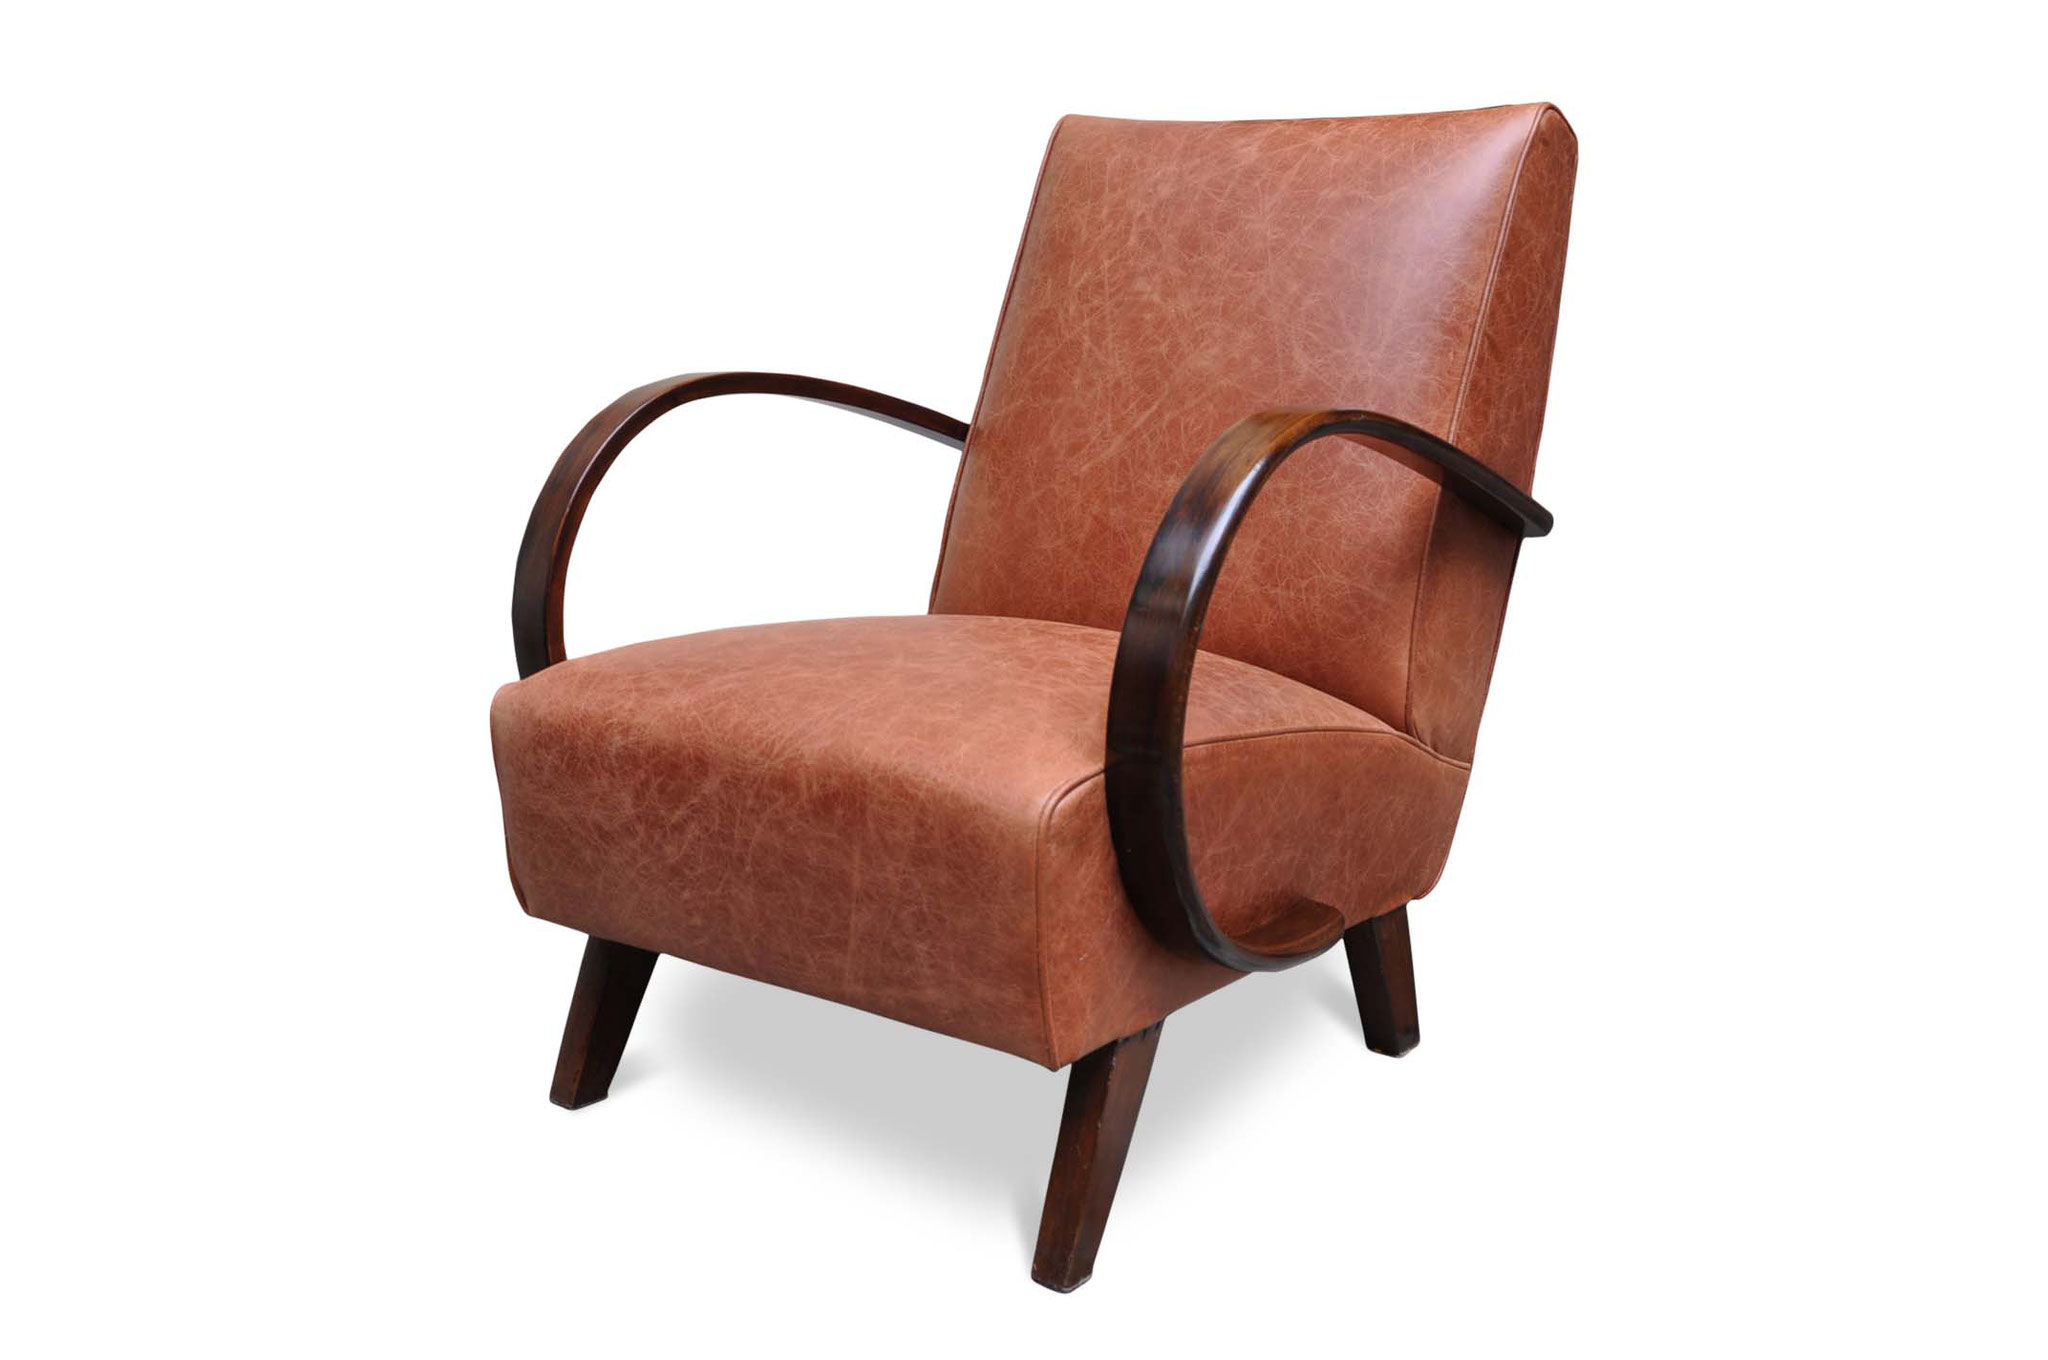 art deco chair in leather